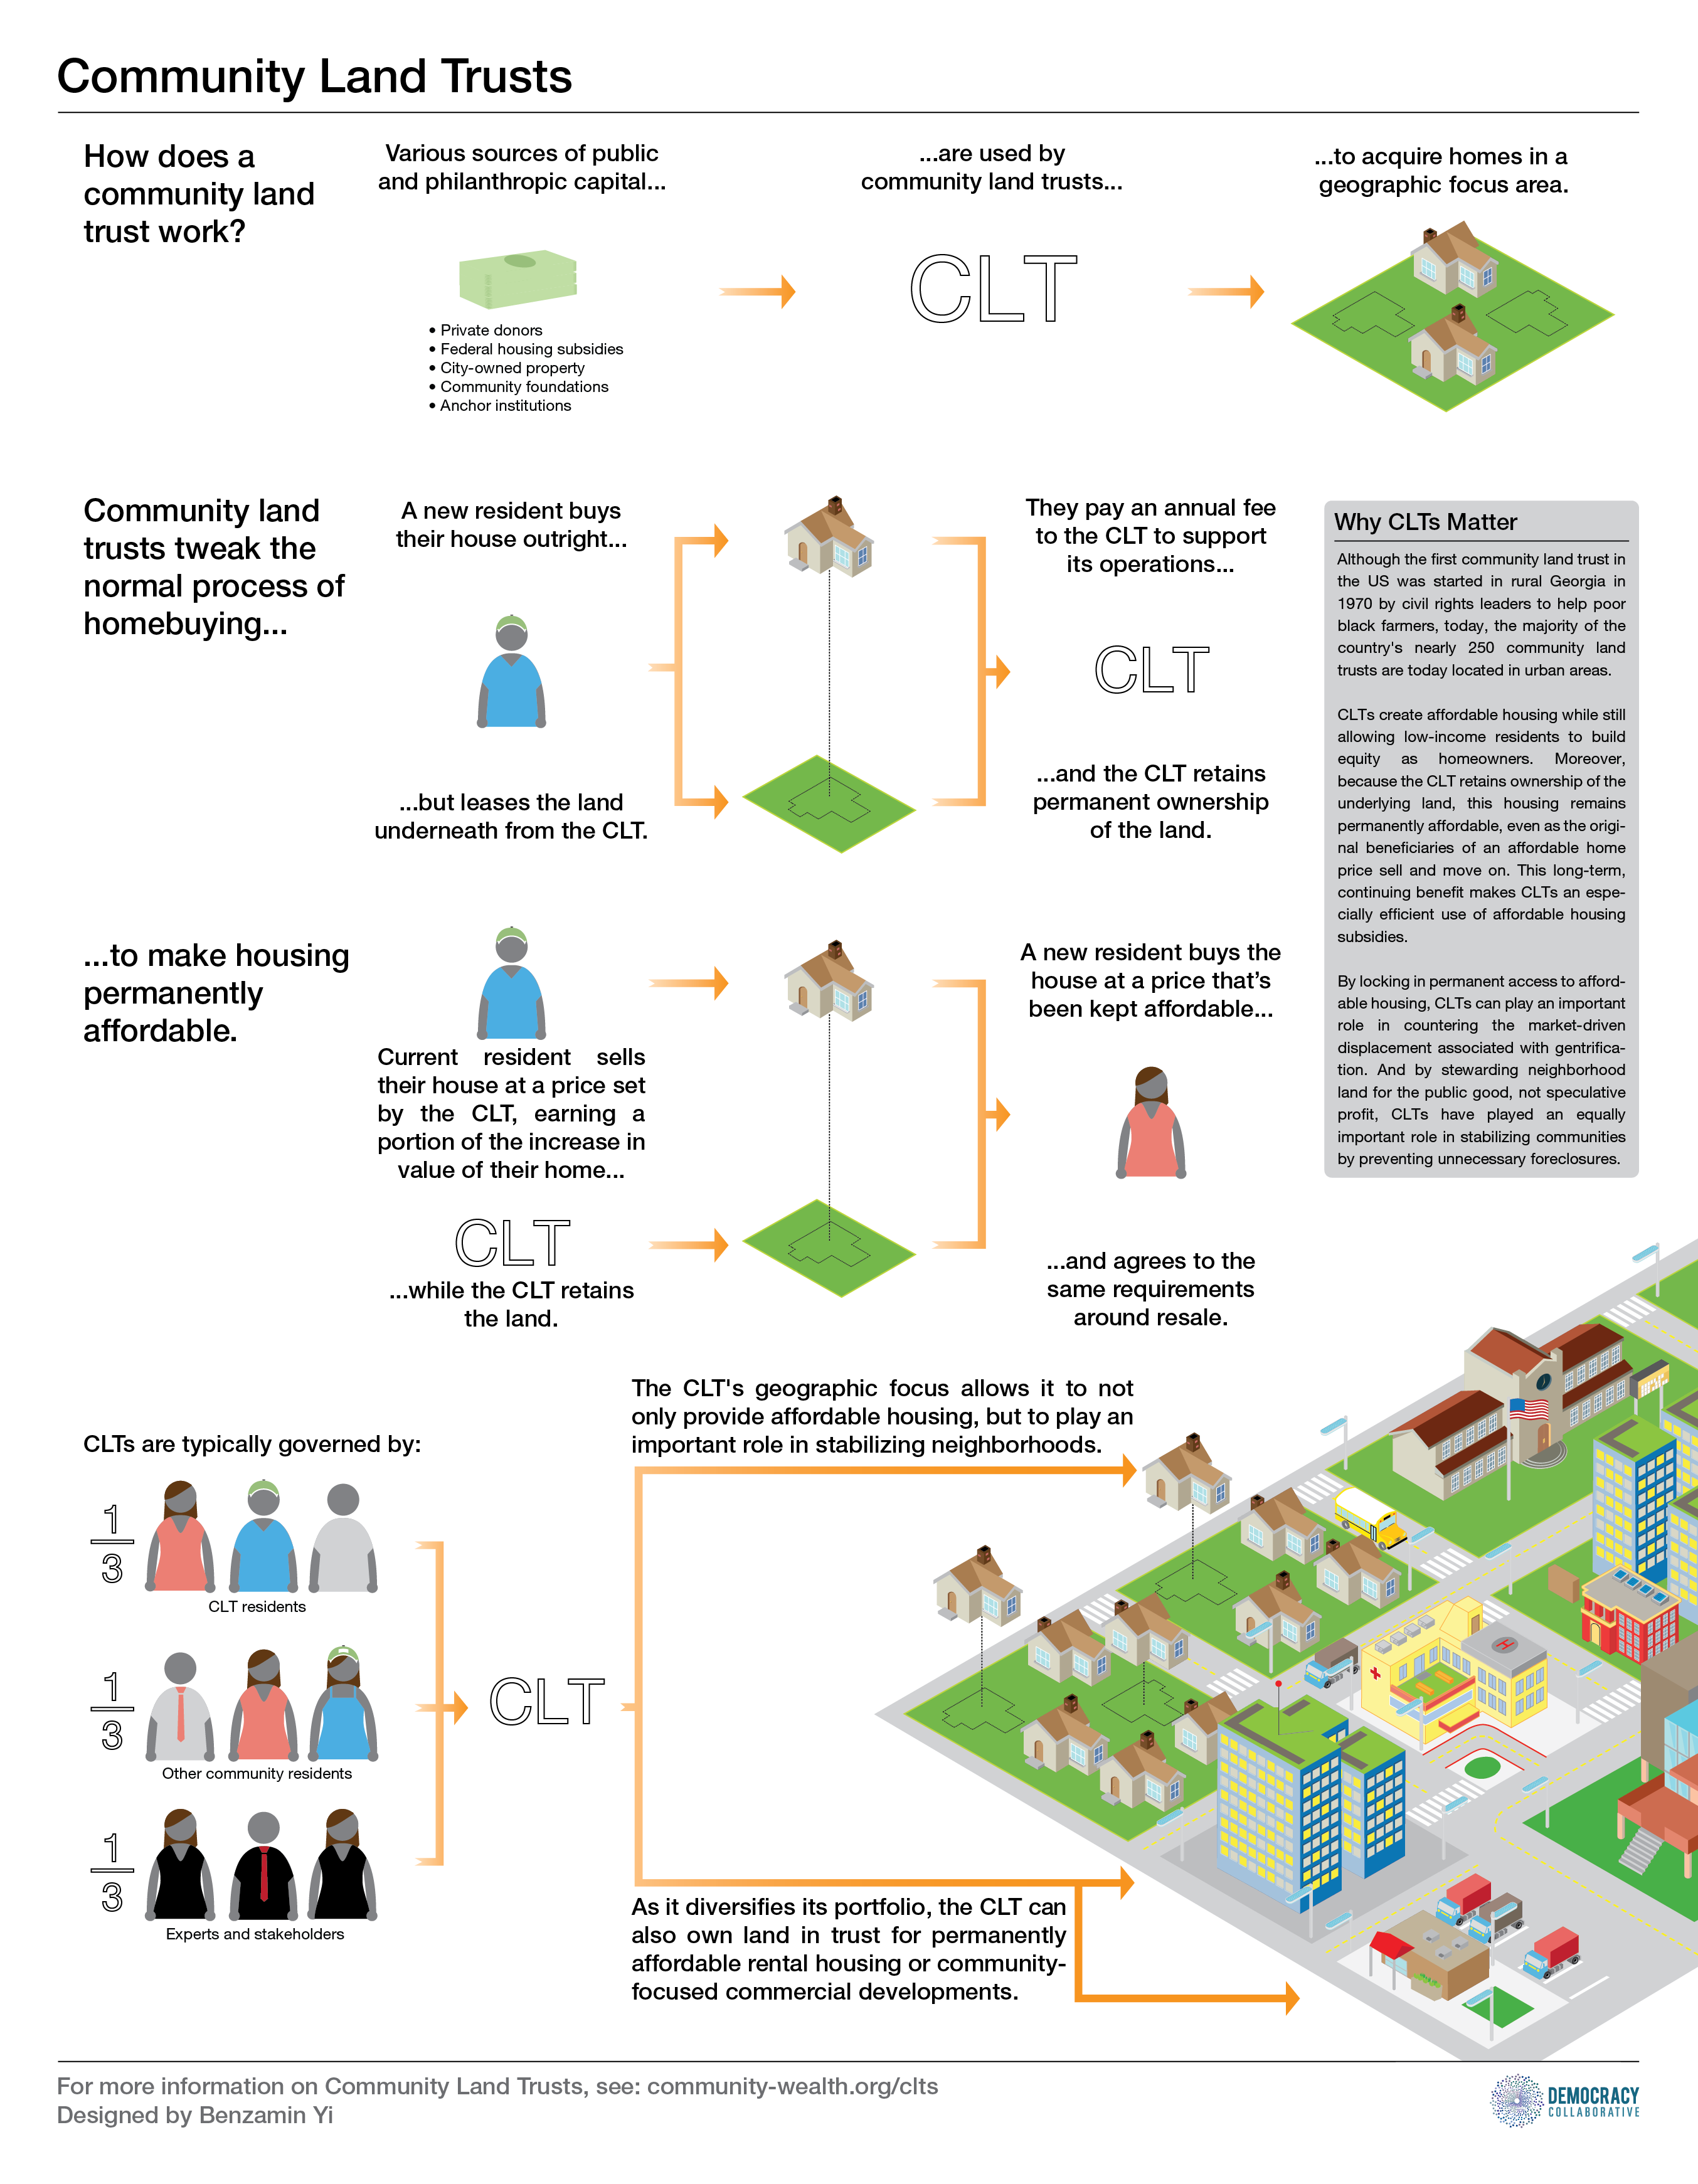 How does a community land trust work?